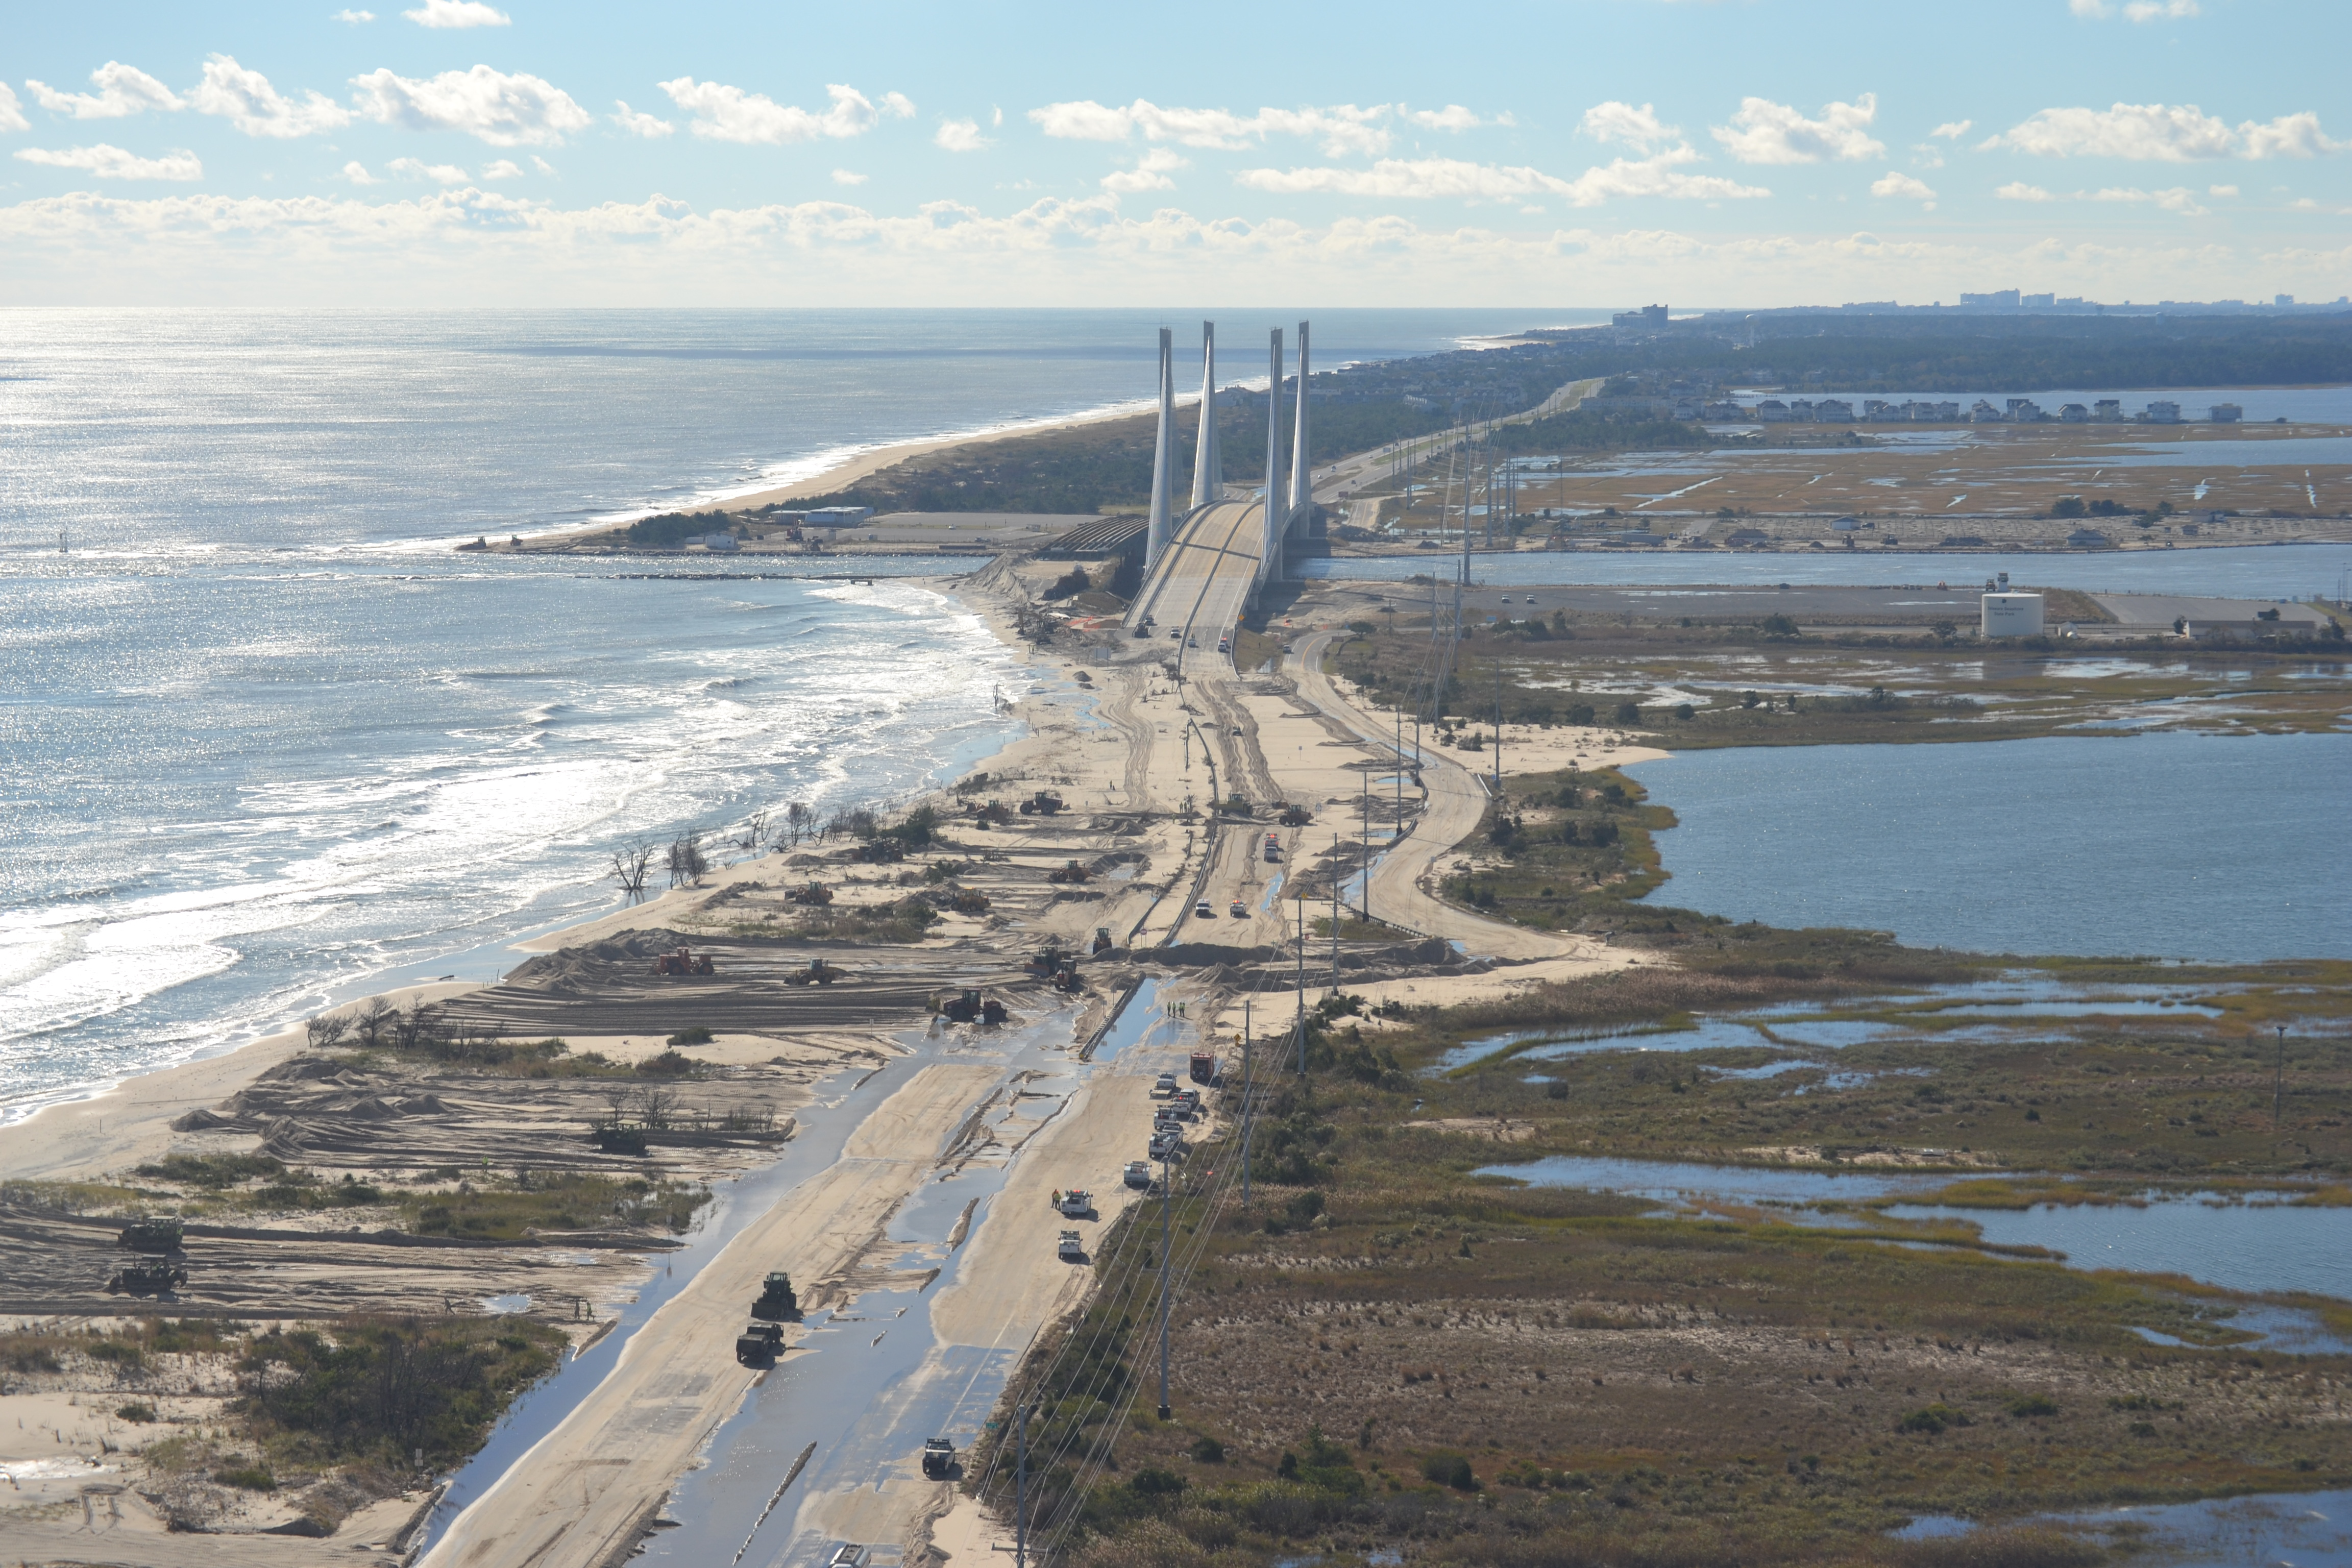 Officials commend Army Corps' efforts to restore Delaware